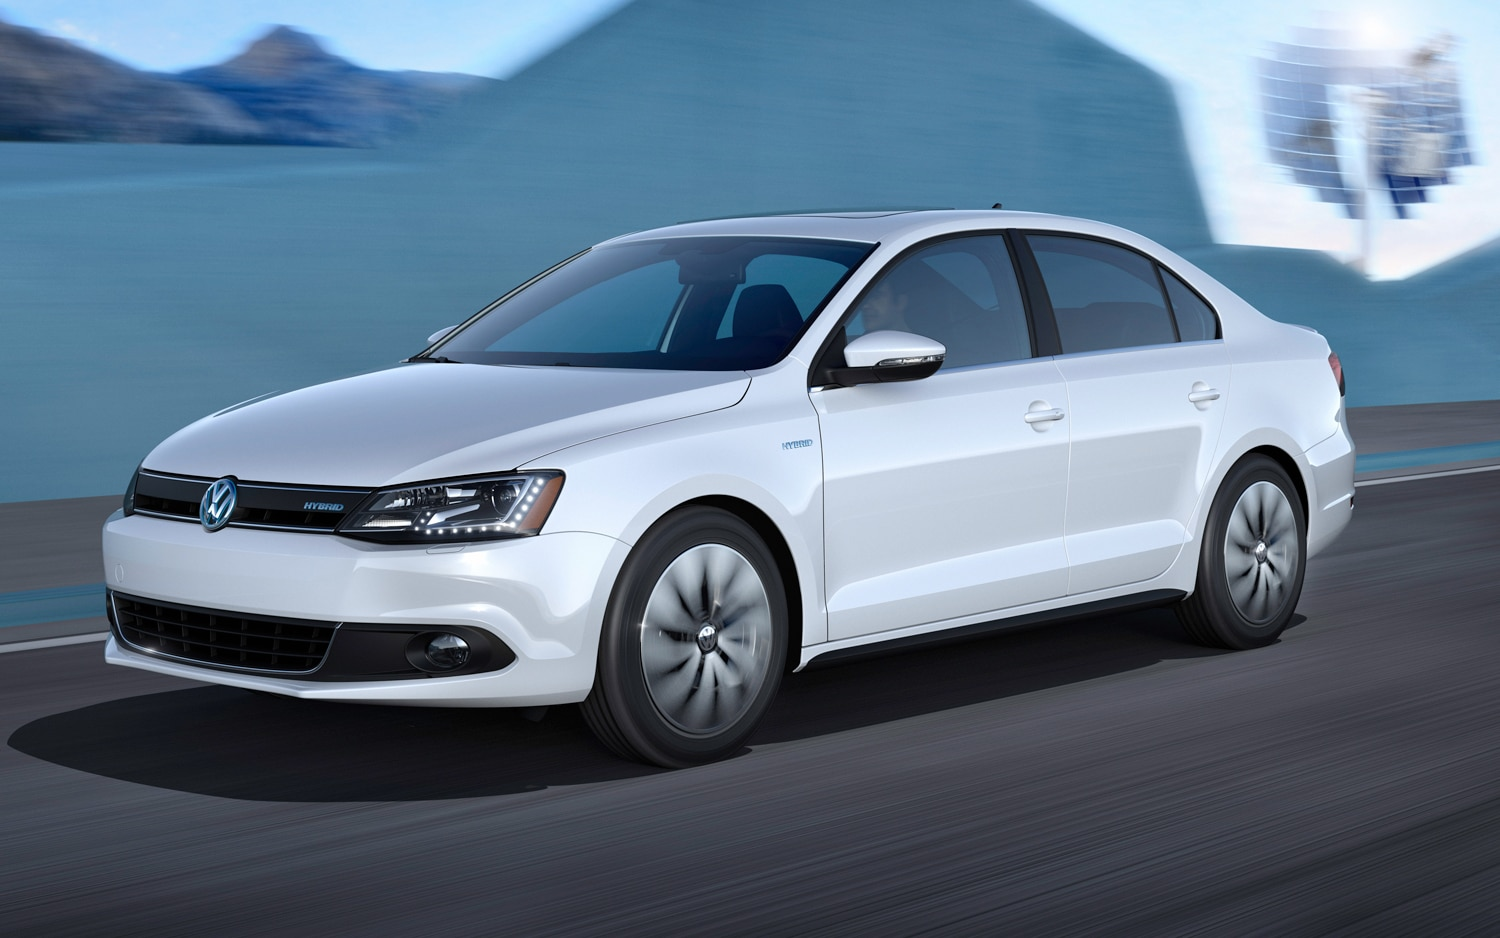 detroit 2012 volkswagen unveils 2013 jetta hybrid with up. Black Bedroom Furniture Sets. Home Design Ideas